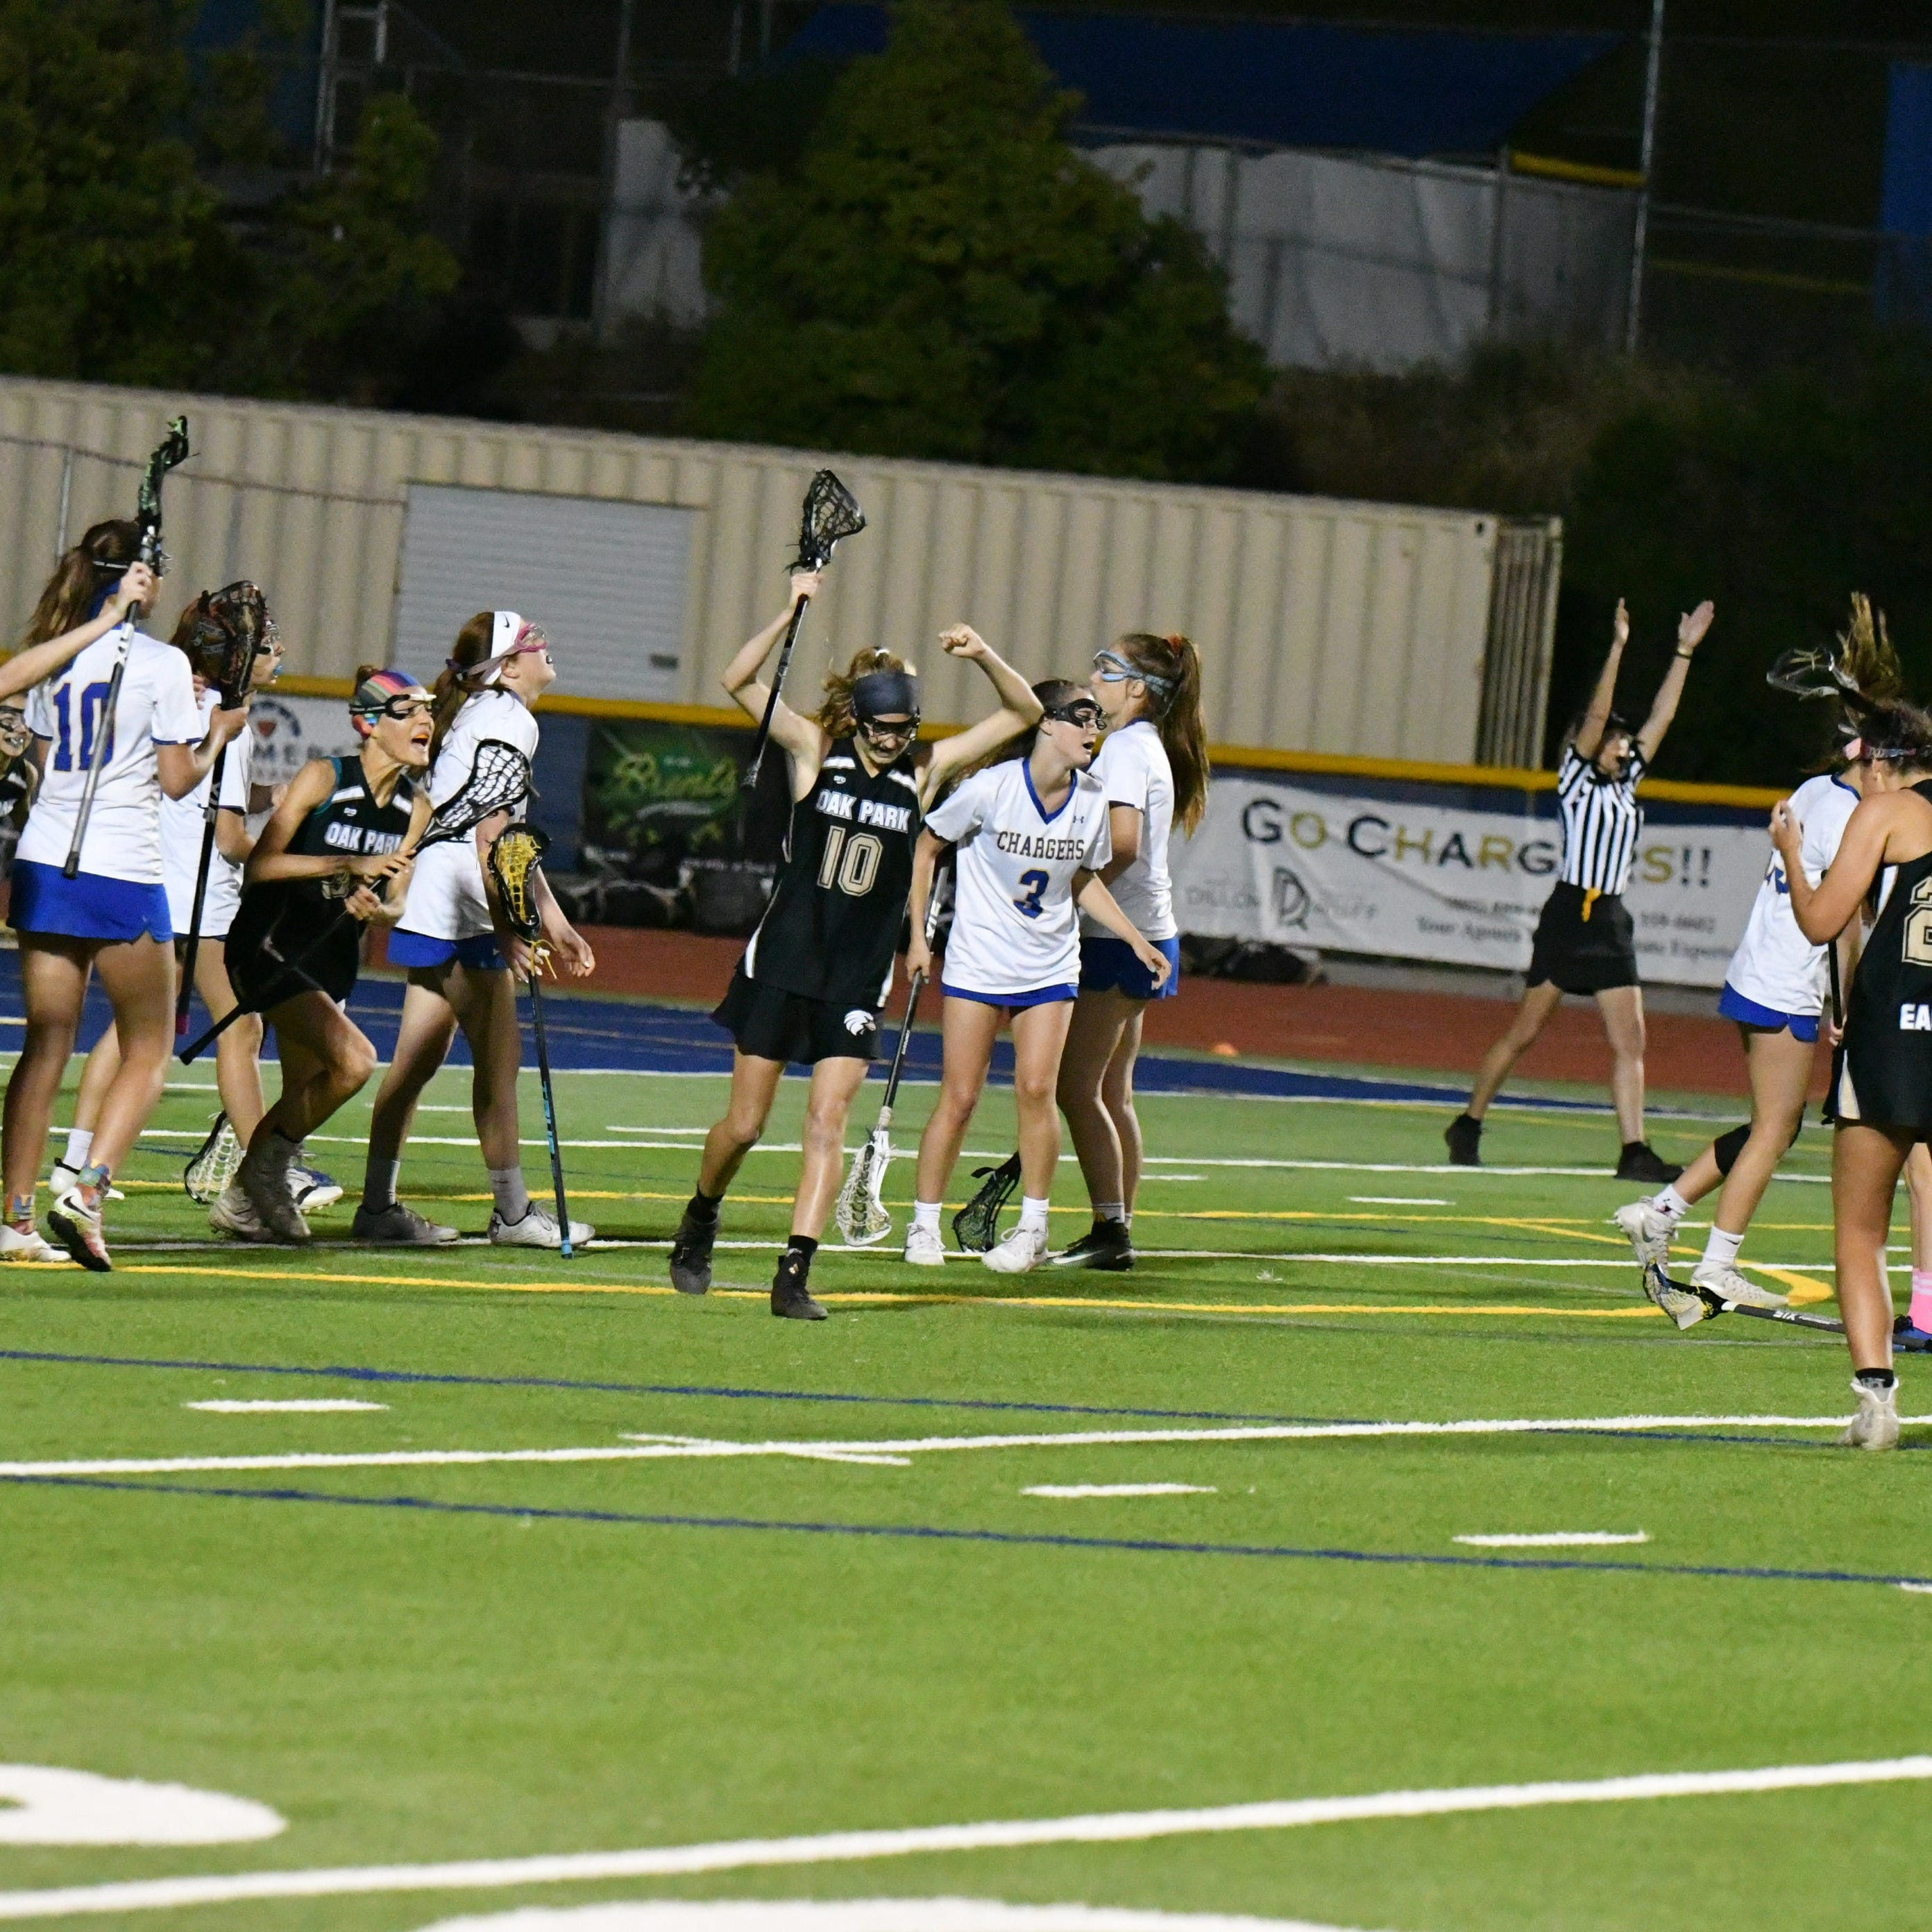 Lax notebook: Oak Park, Agoura inject rivalry passion into inaugural league tournament